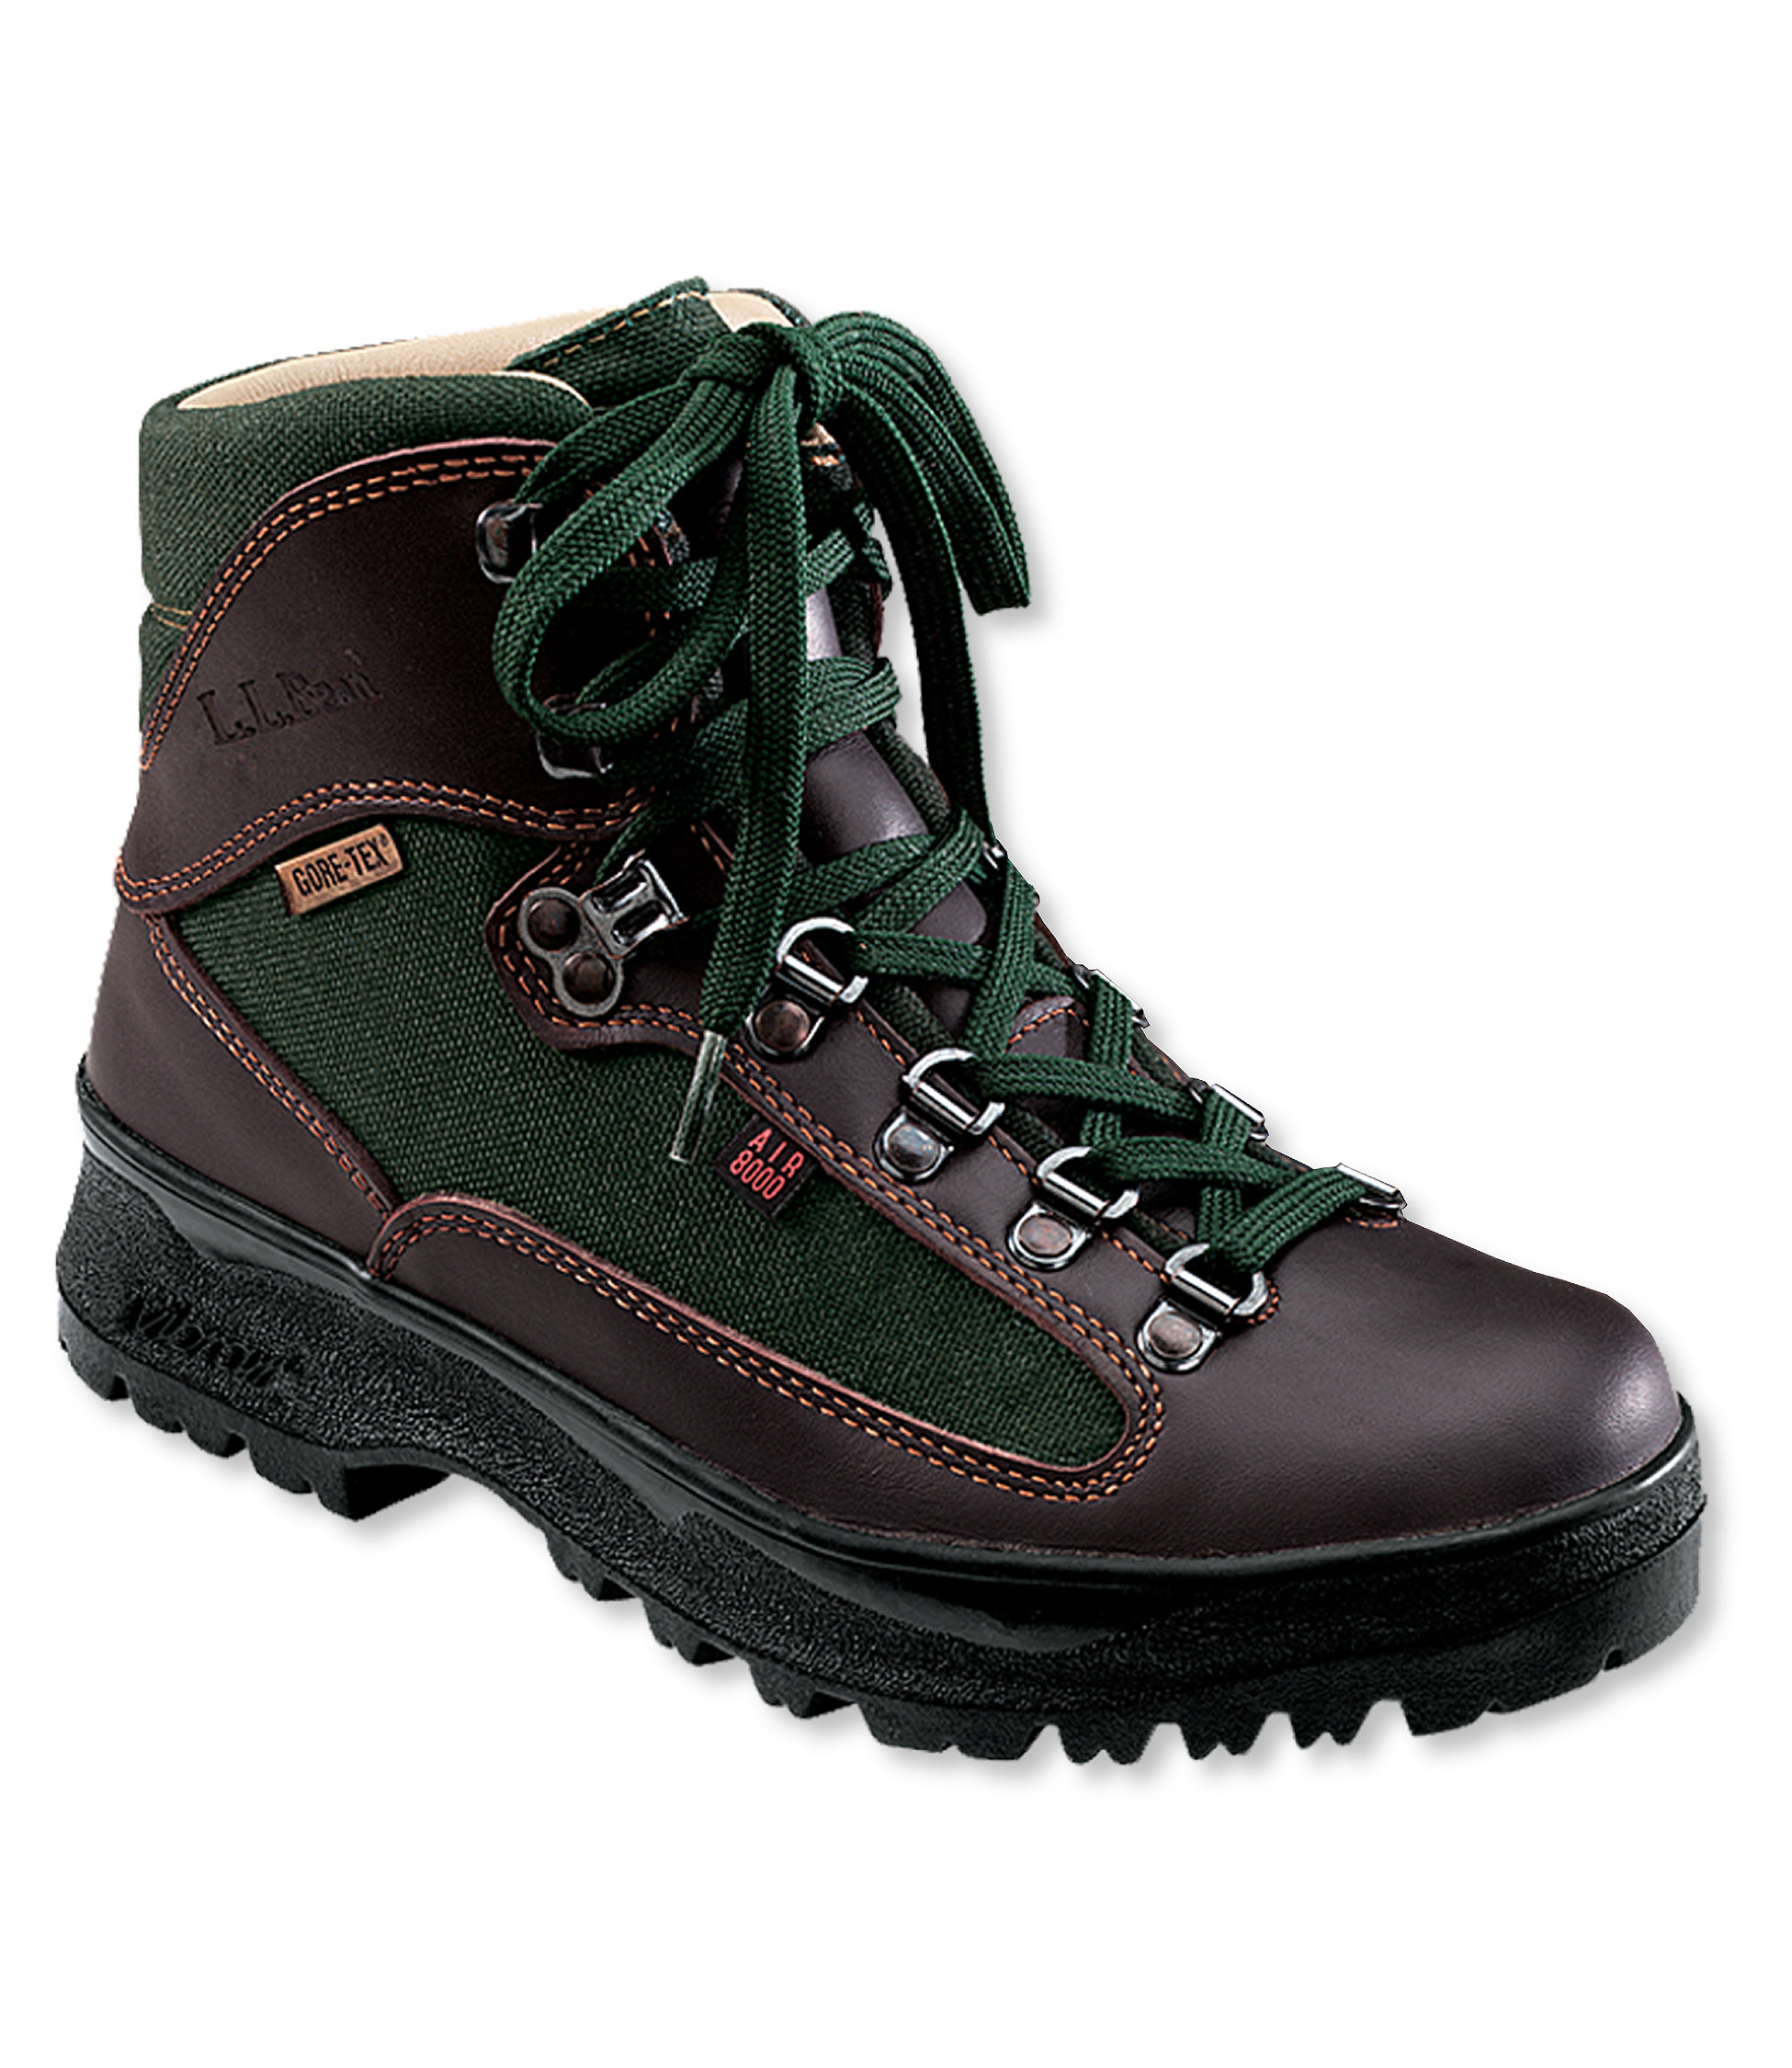 L.L.Bean Gore-Tex Cresta Hiker, Leather/Fabric